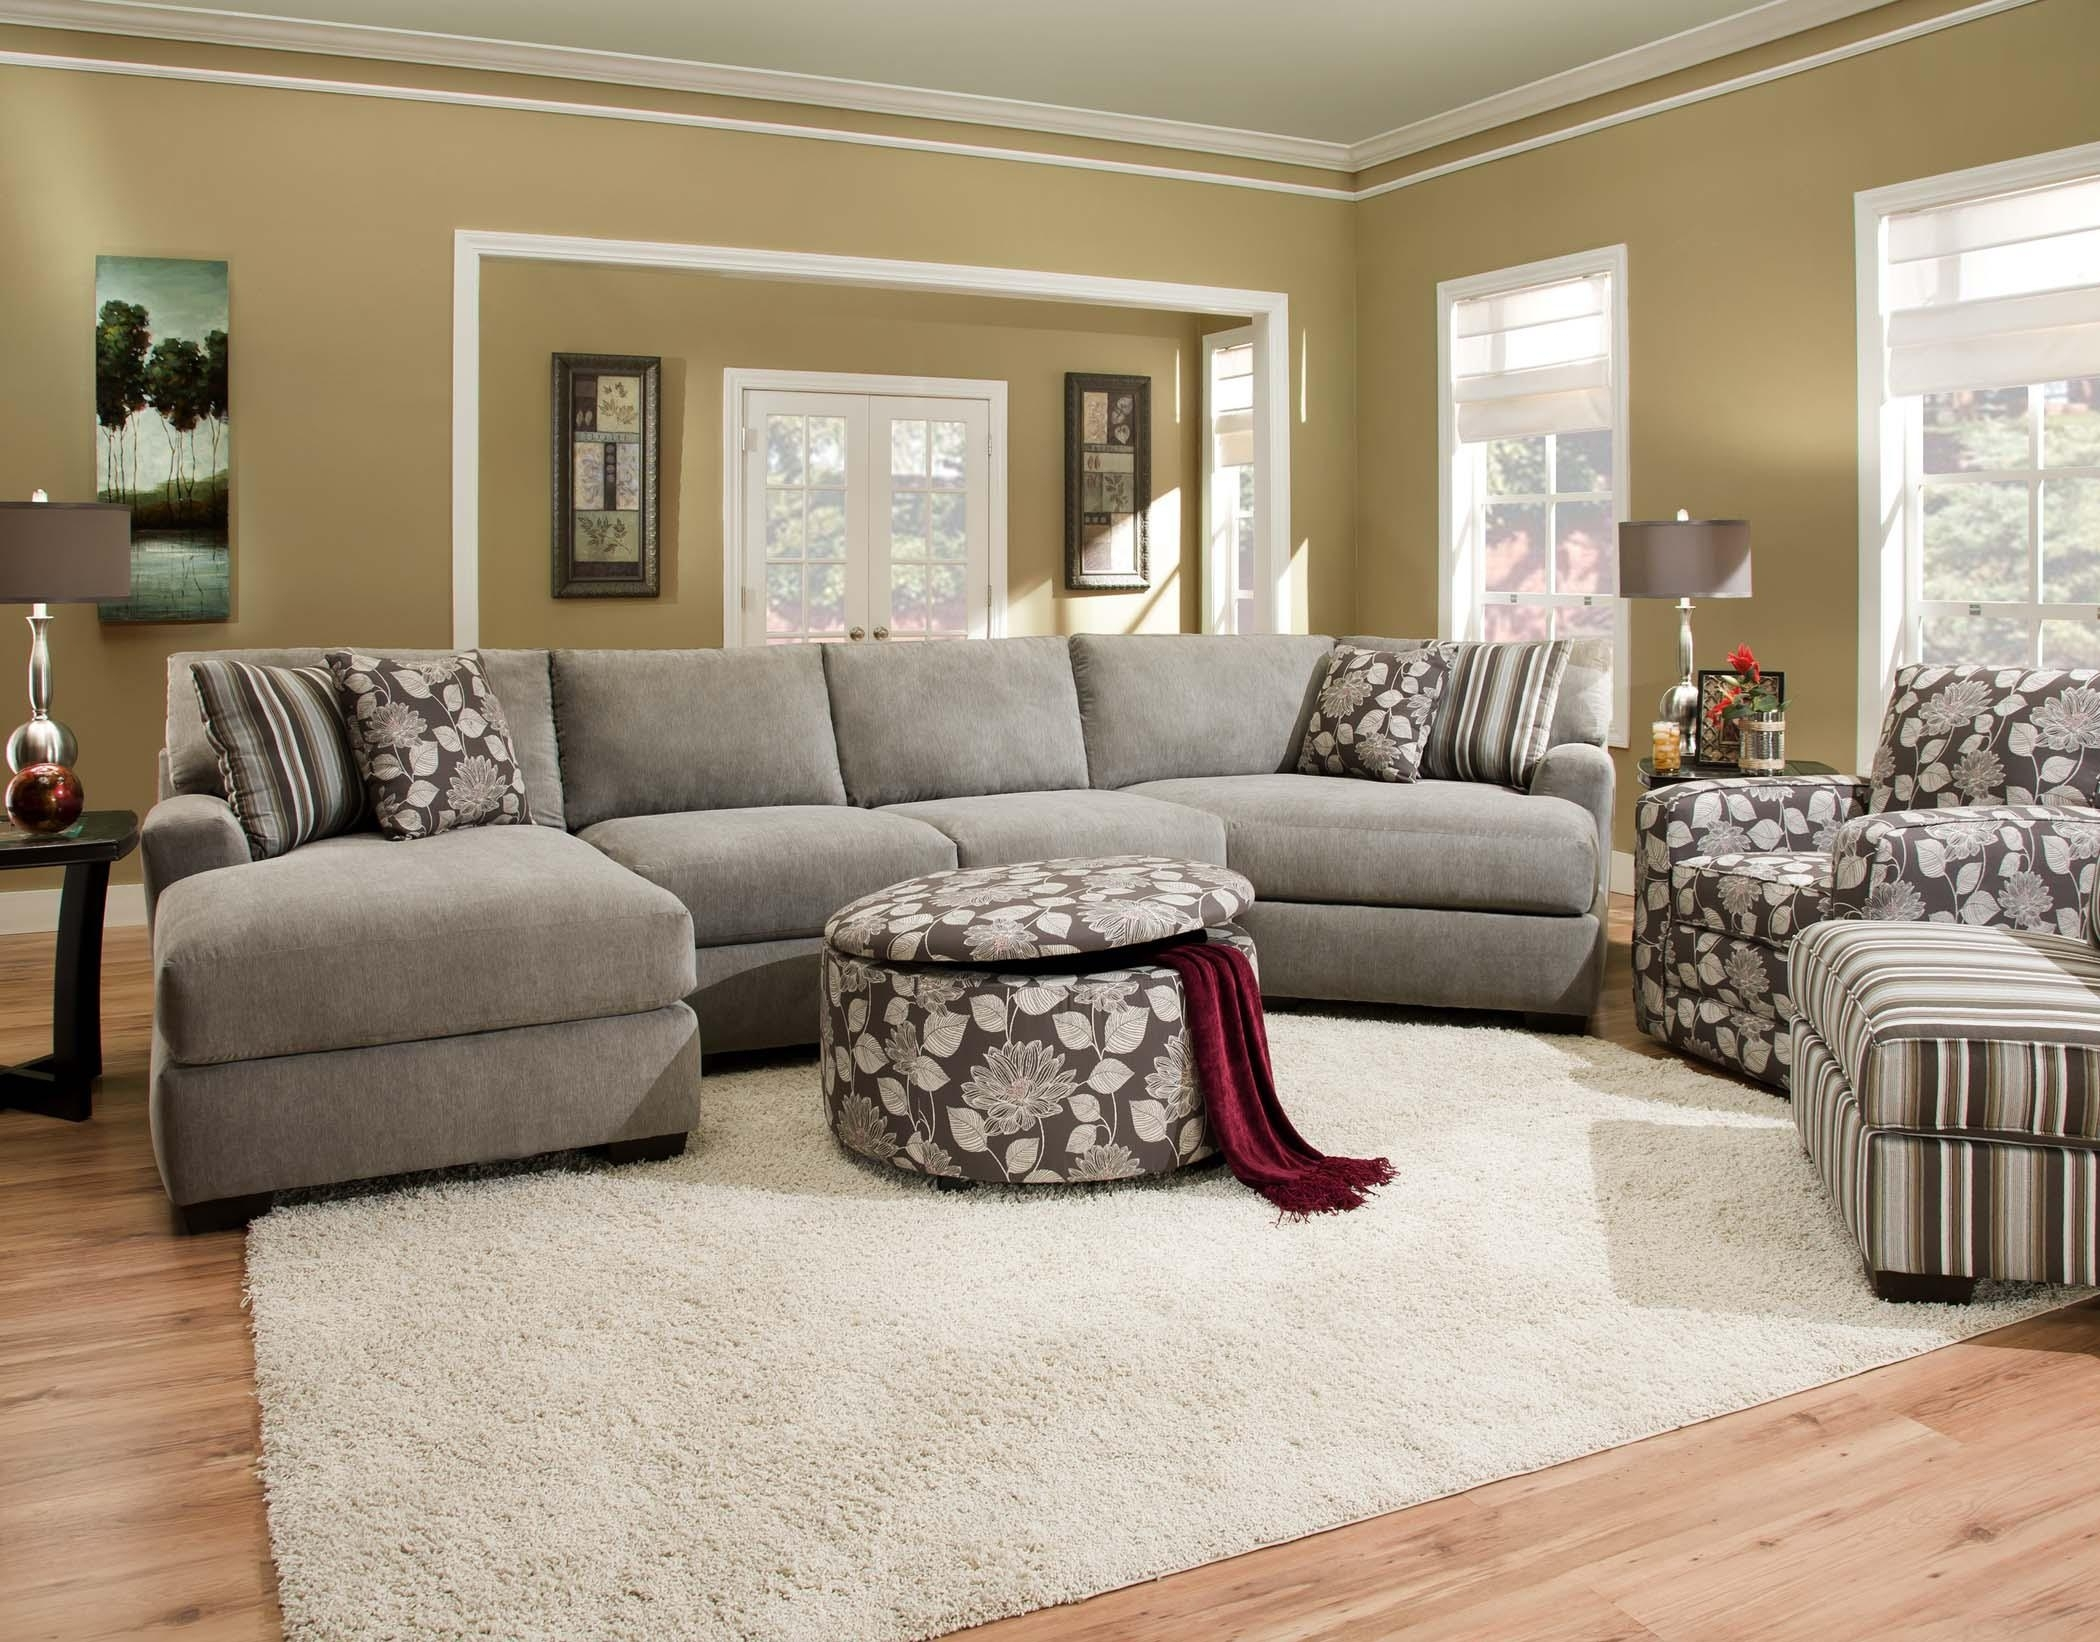 Corinthian 29A0 Sectional Sofa With 4 Seats | Standard Furniture With Josephine 2 Piece Sectionals With Raf Sofa (View 12 of 25)